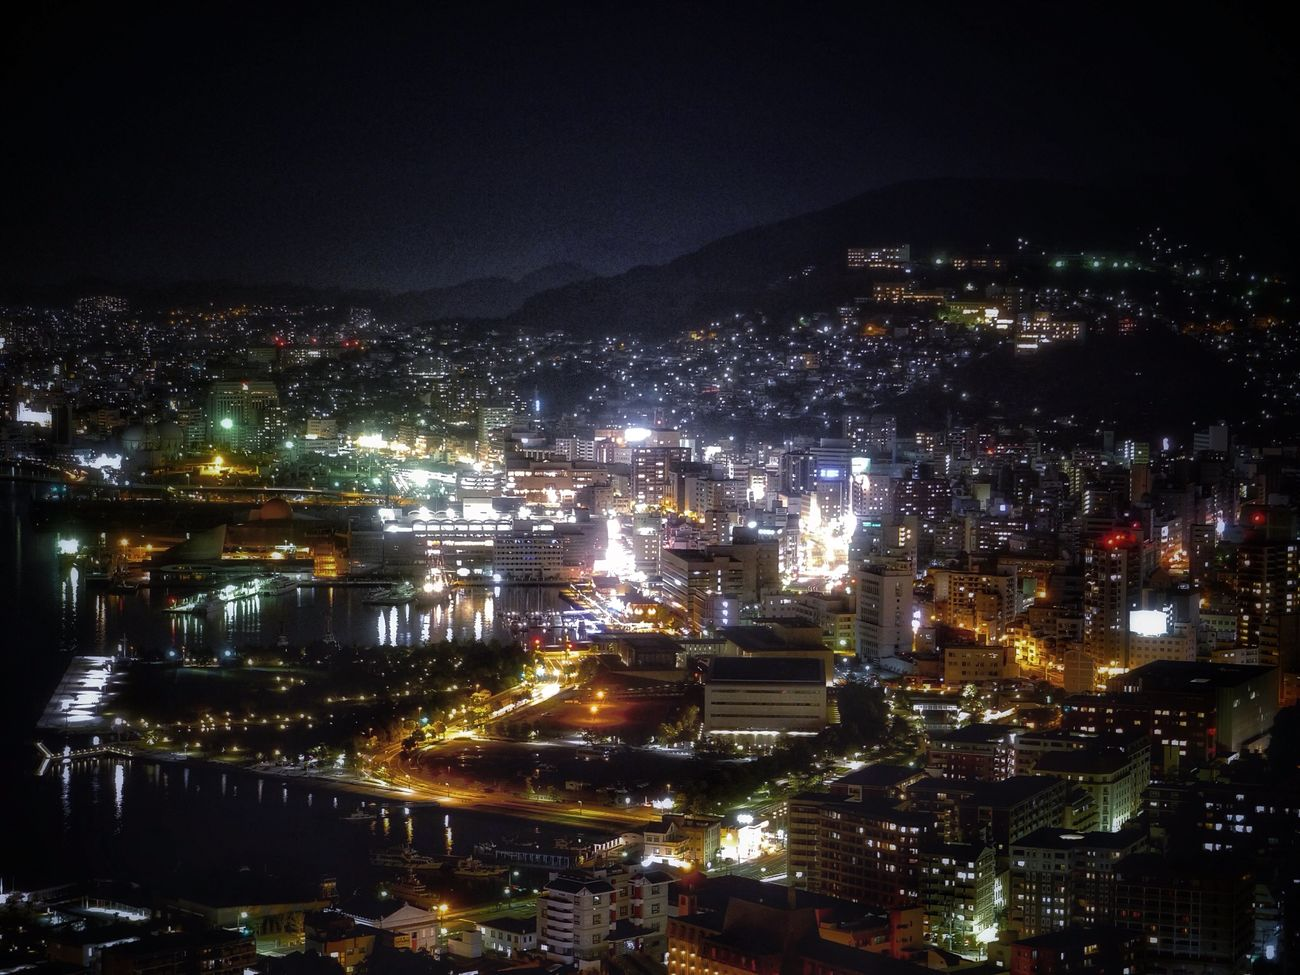 I wanna take you higher Again : 22:00 ( Japan Standard Time ) The Places I've Been Today View from Mt.Nabekanmuri-Yama Observatory Cityscapes Landscape Night Lights Water Reflections Birdview / LUMIX G Vario Lens 90mm f/5.6 de Good Night No Filter http://youtu.be/NQQzbWdvuBs Nagasa-Kirei ( ナガサキレイ )